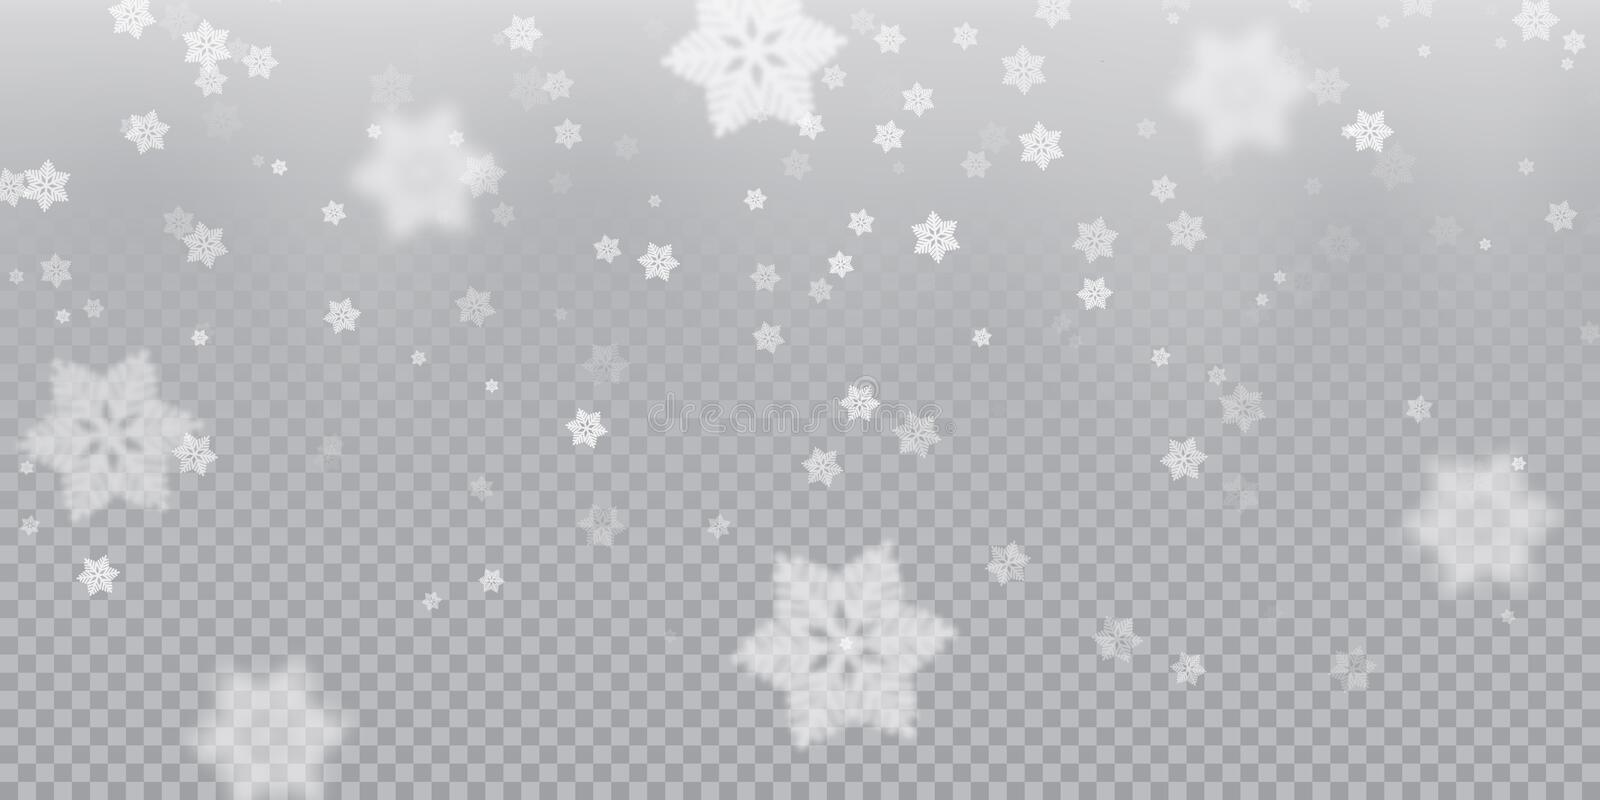 Falling snowflake pattern background of white cold snowfall overlay texture on transparent background. Winter Xmas snow f royalty free illustration